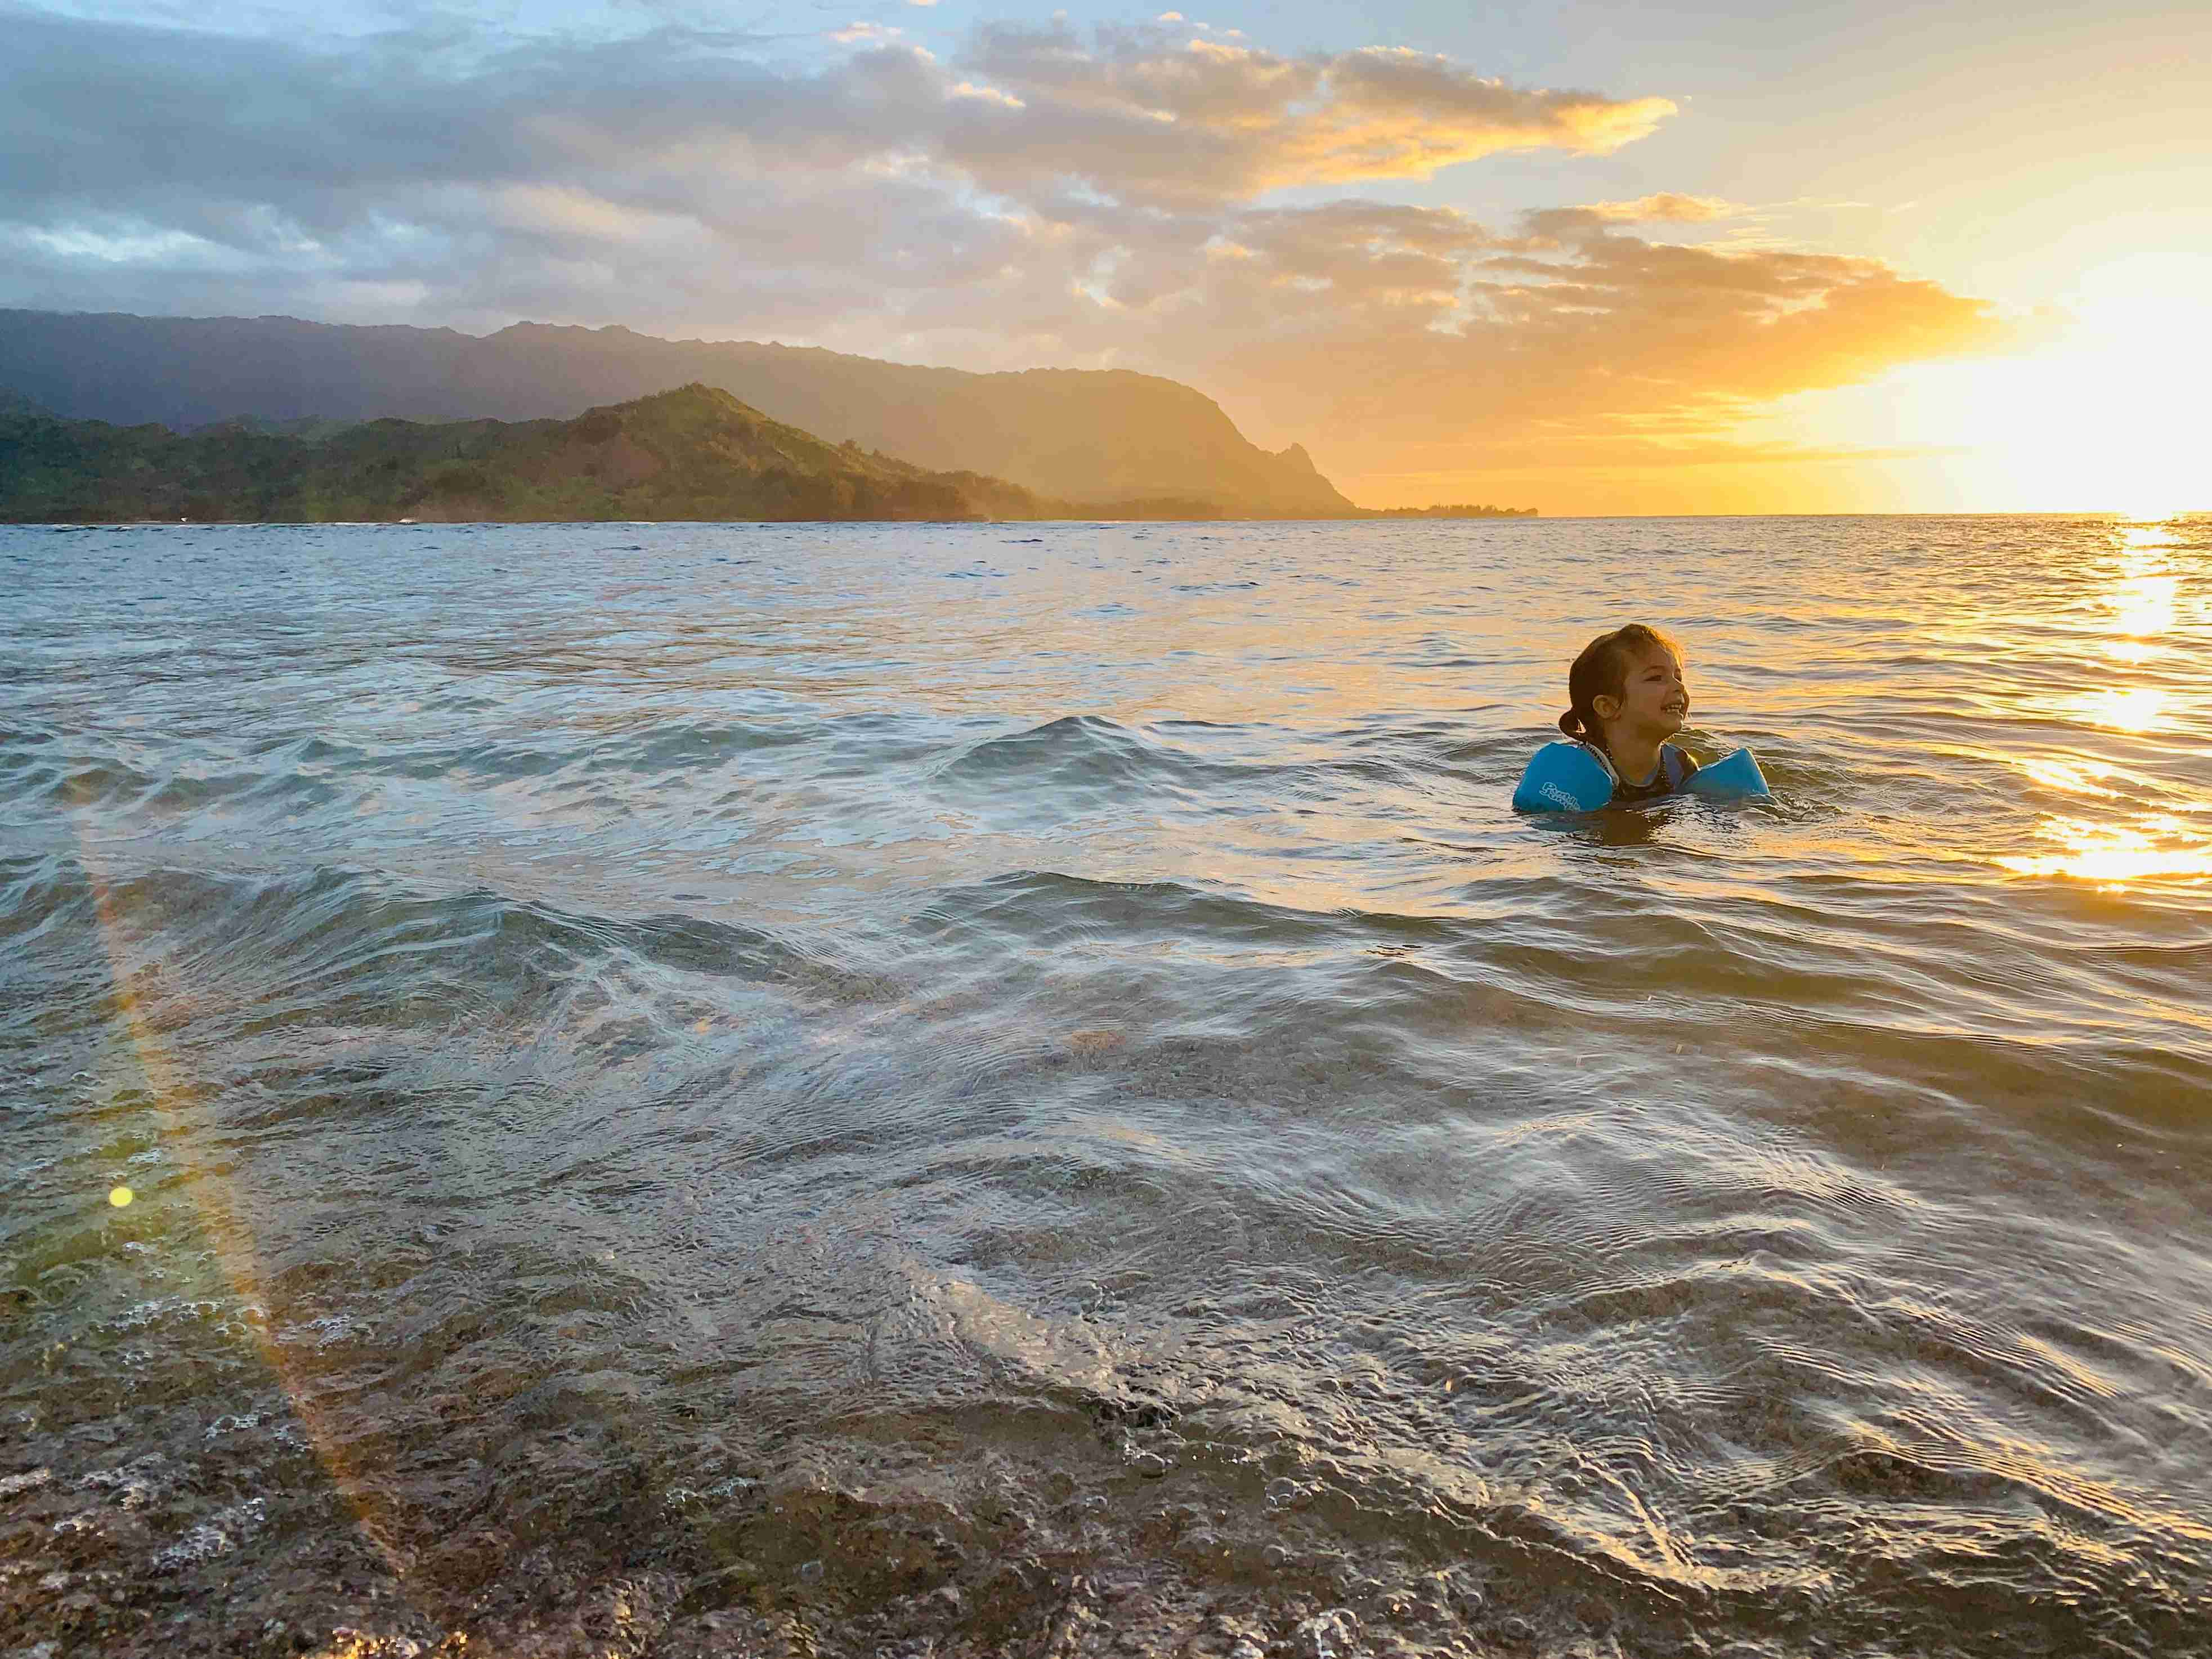 Kauai is magical (Photo by Summer Hull/The Points Guy)